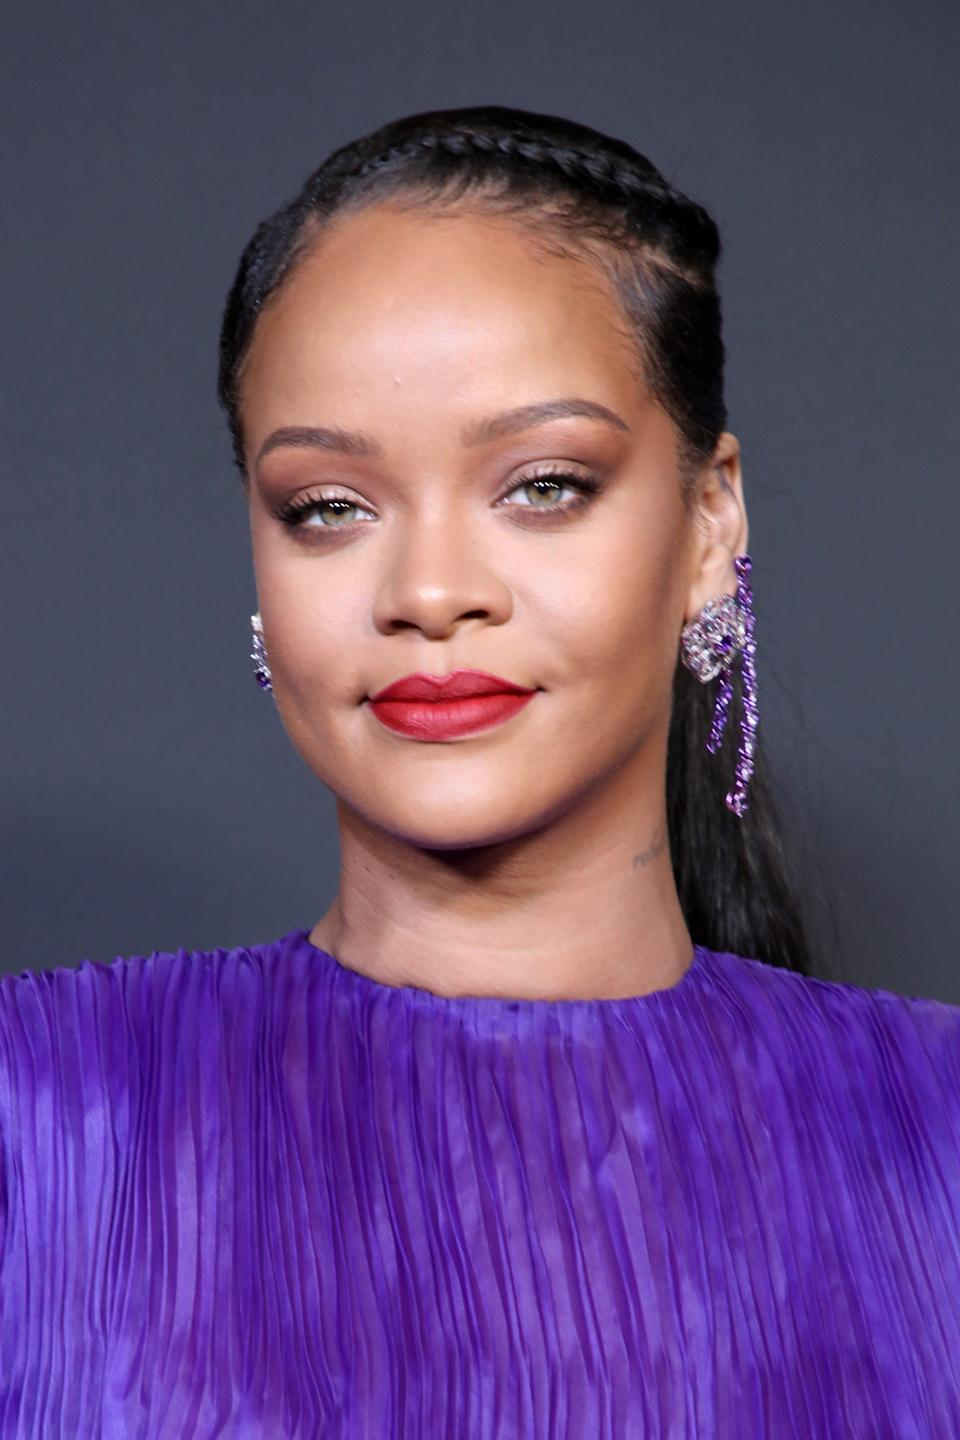 Rihanna is coming under fire for wearing a necklace depicting a Hindu god in her latest sultry Instagram post.